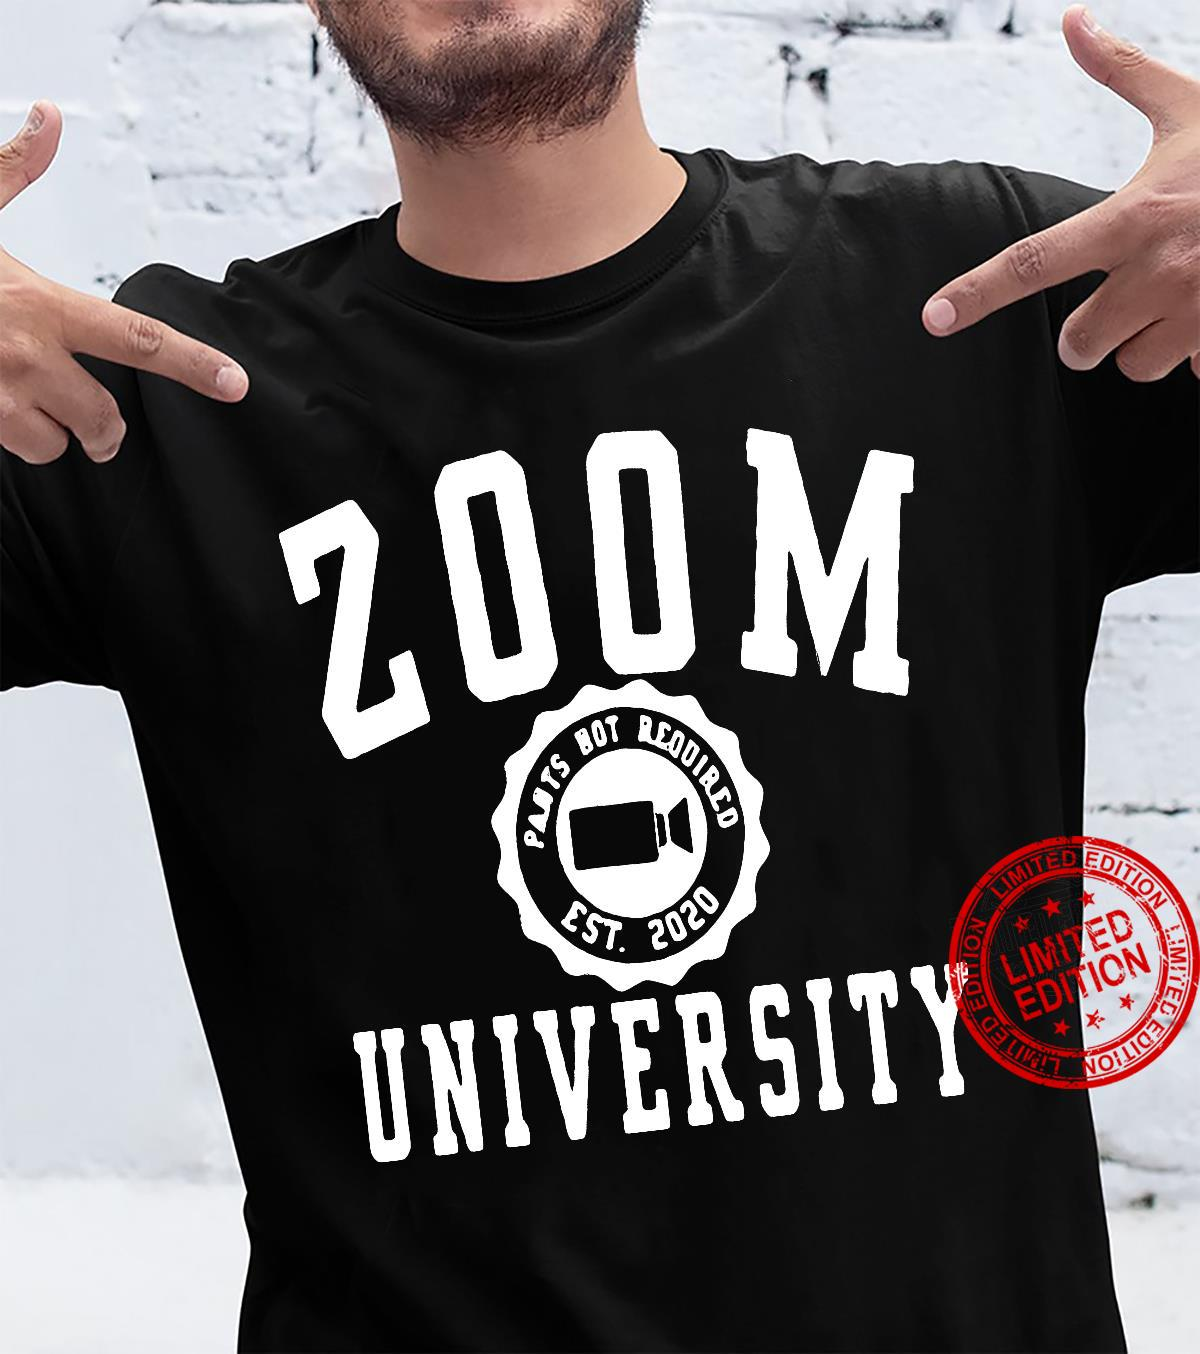 Zoom University Pants Not Required Est 2020 Shirt